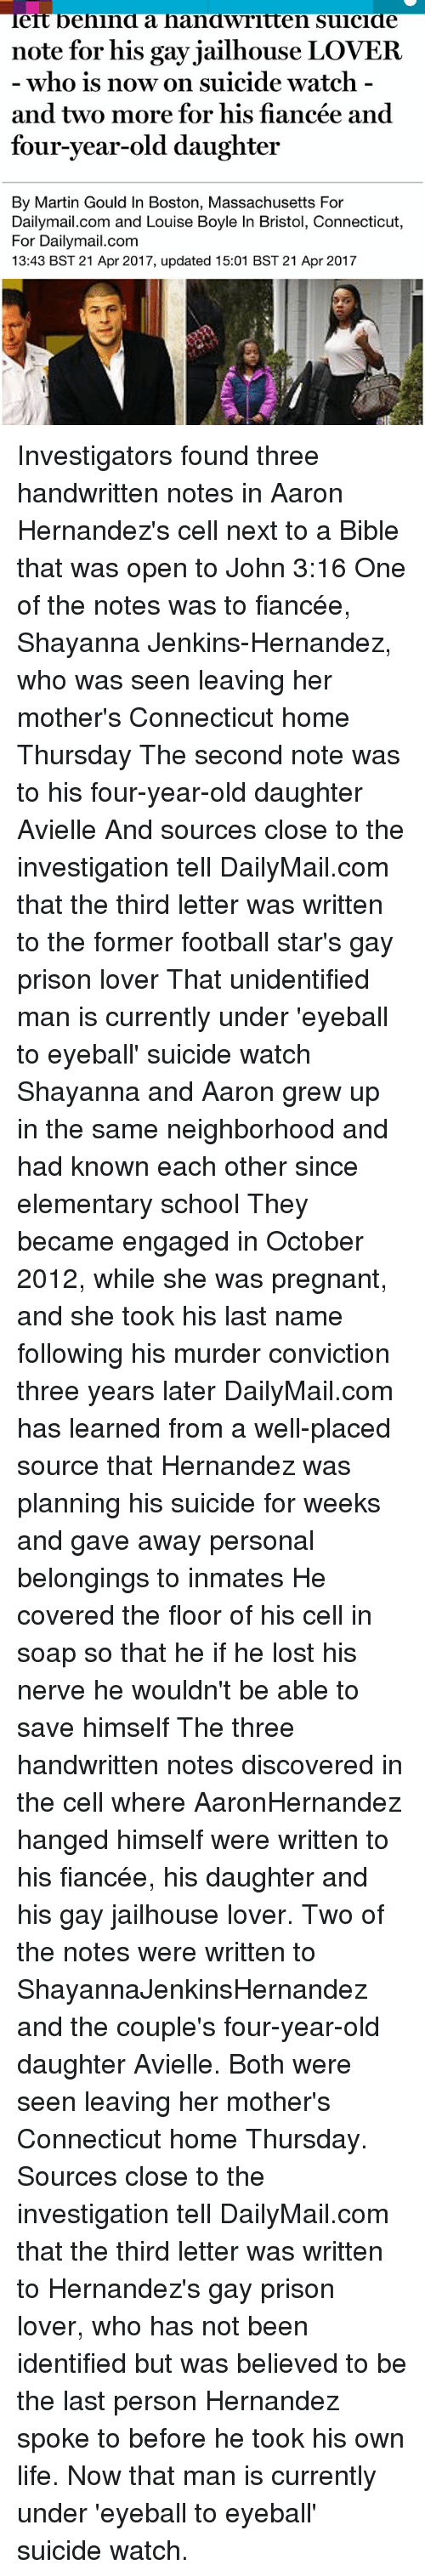 jenkins gay personals Shayanna jenkins stood by her fiance, nfl star aaron hernandez, even after he was charged with the 2013 massachusetts murder of her sister's boyfriend - causing a rift between the siblings.